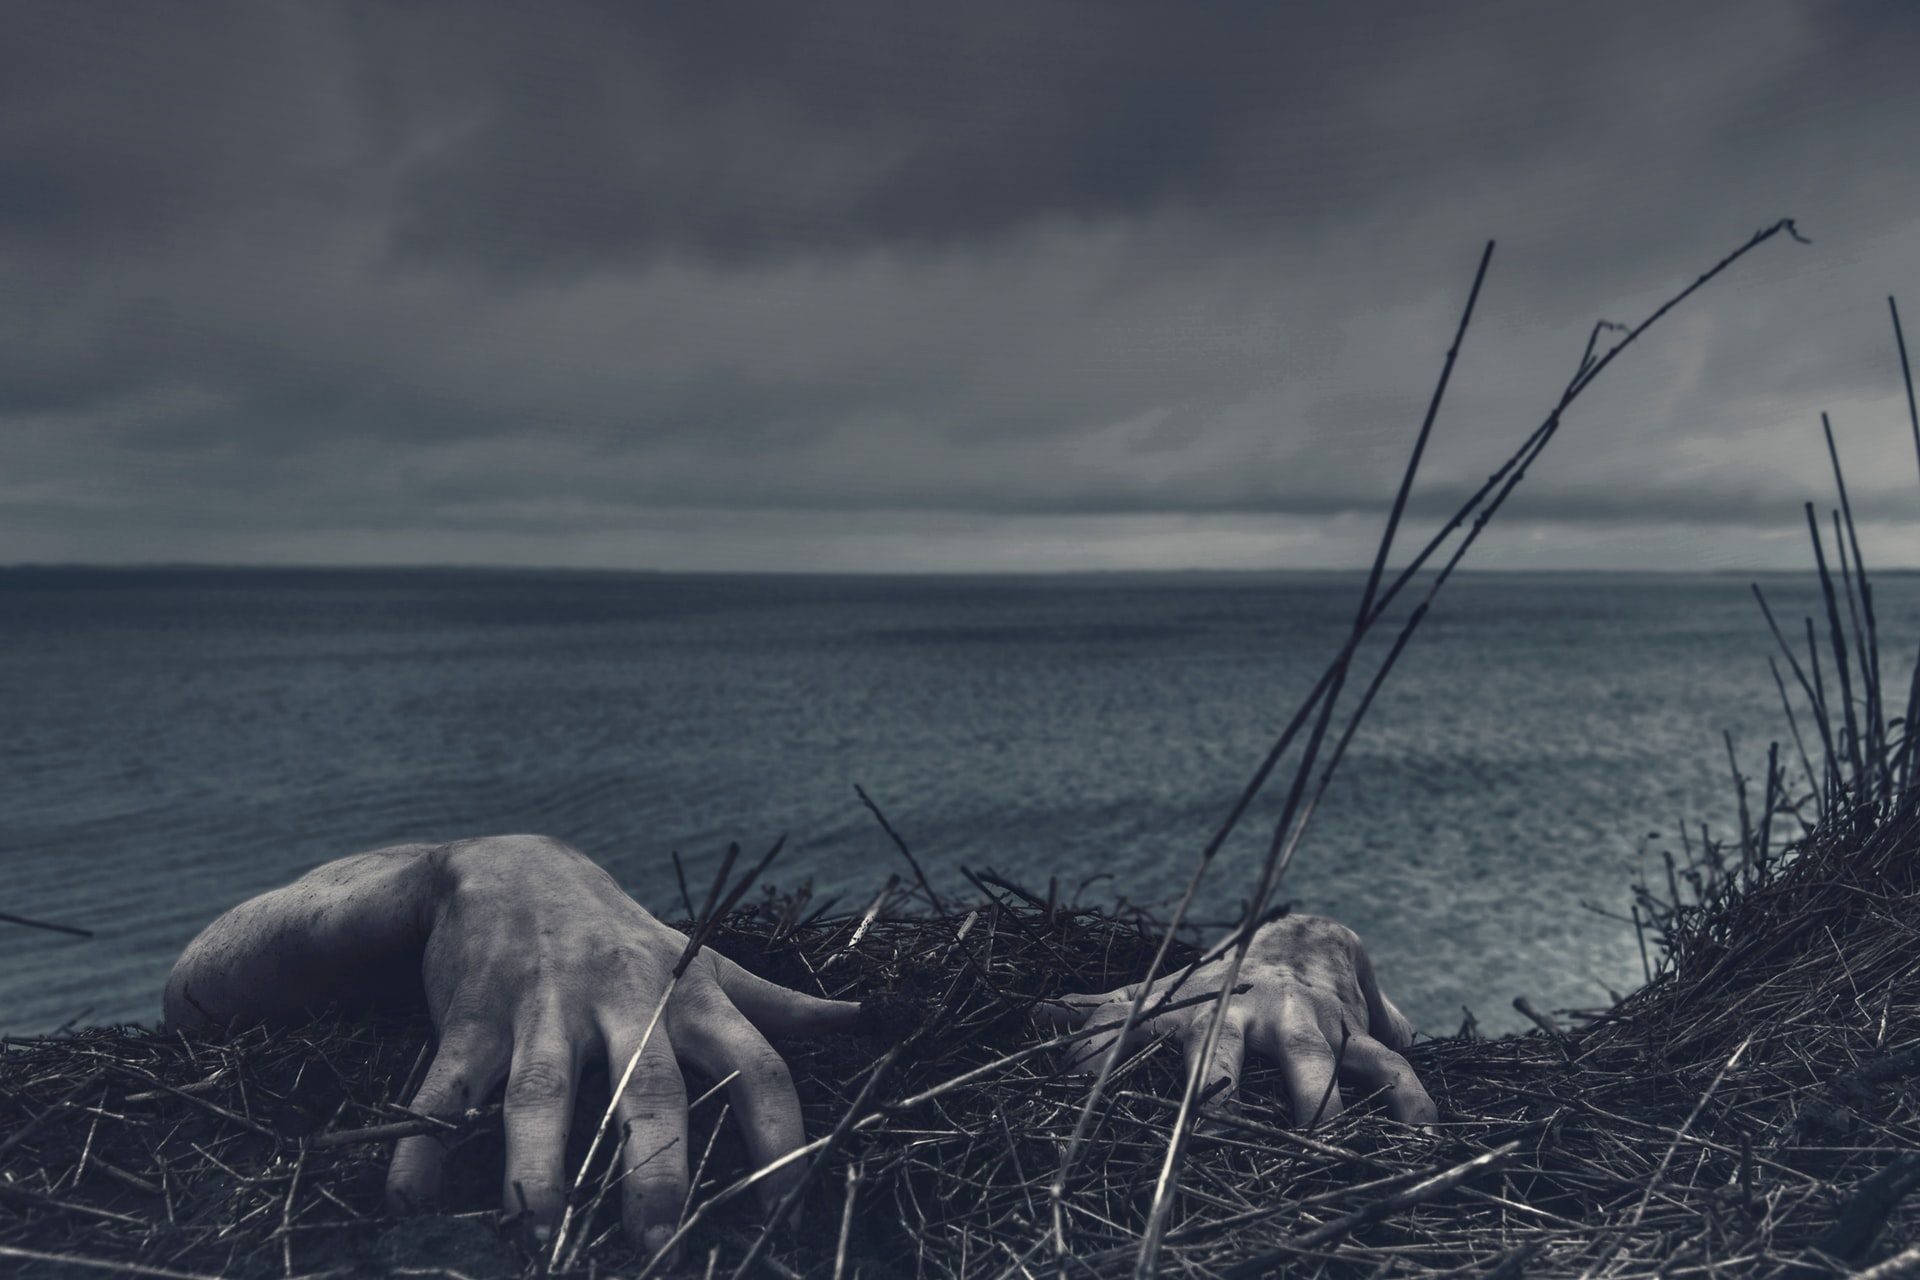 Zombie hands climb up from the ocean. Photo courtesy of Daniel Jensen on Unsplash.